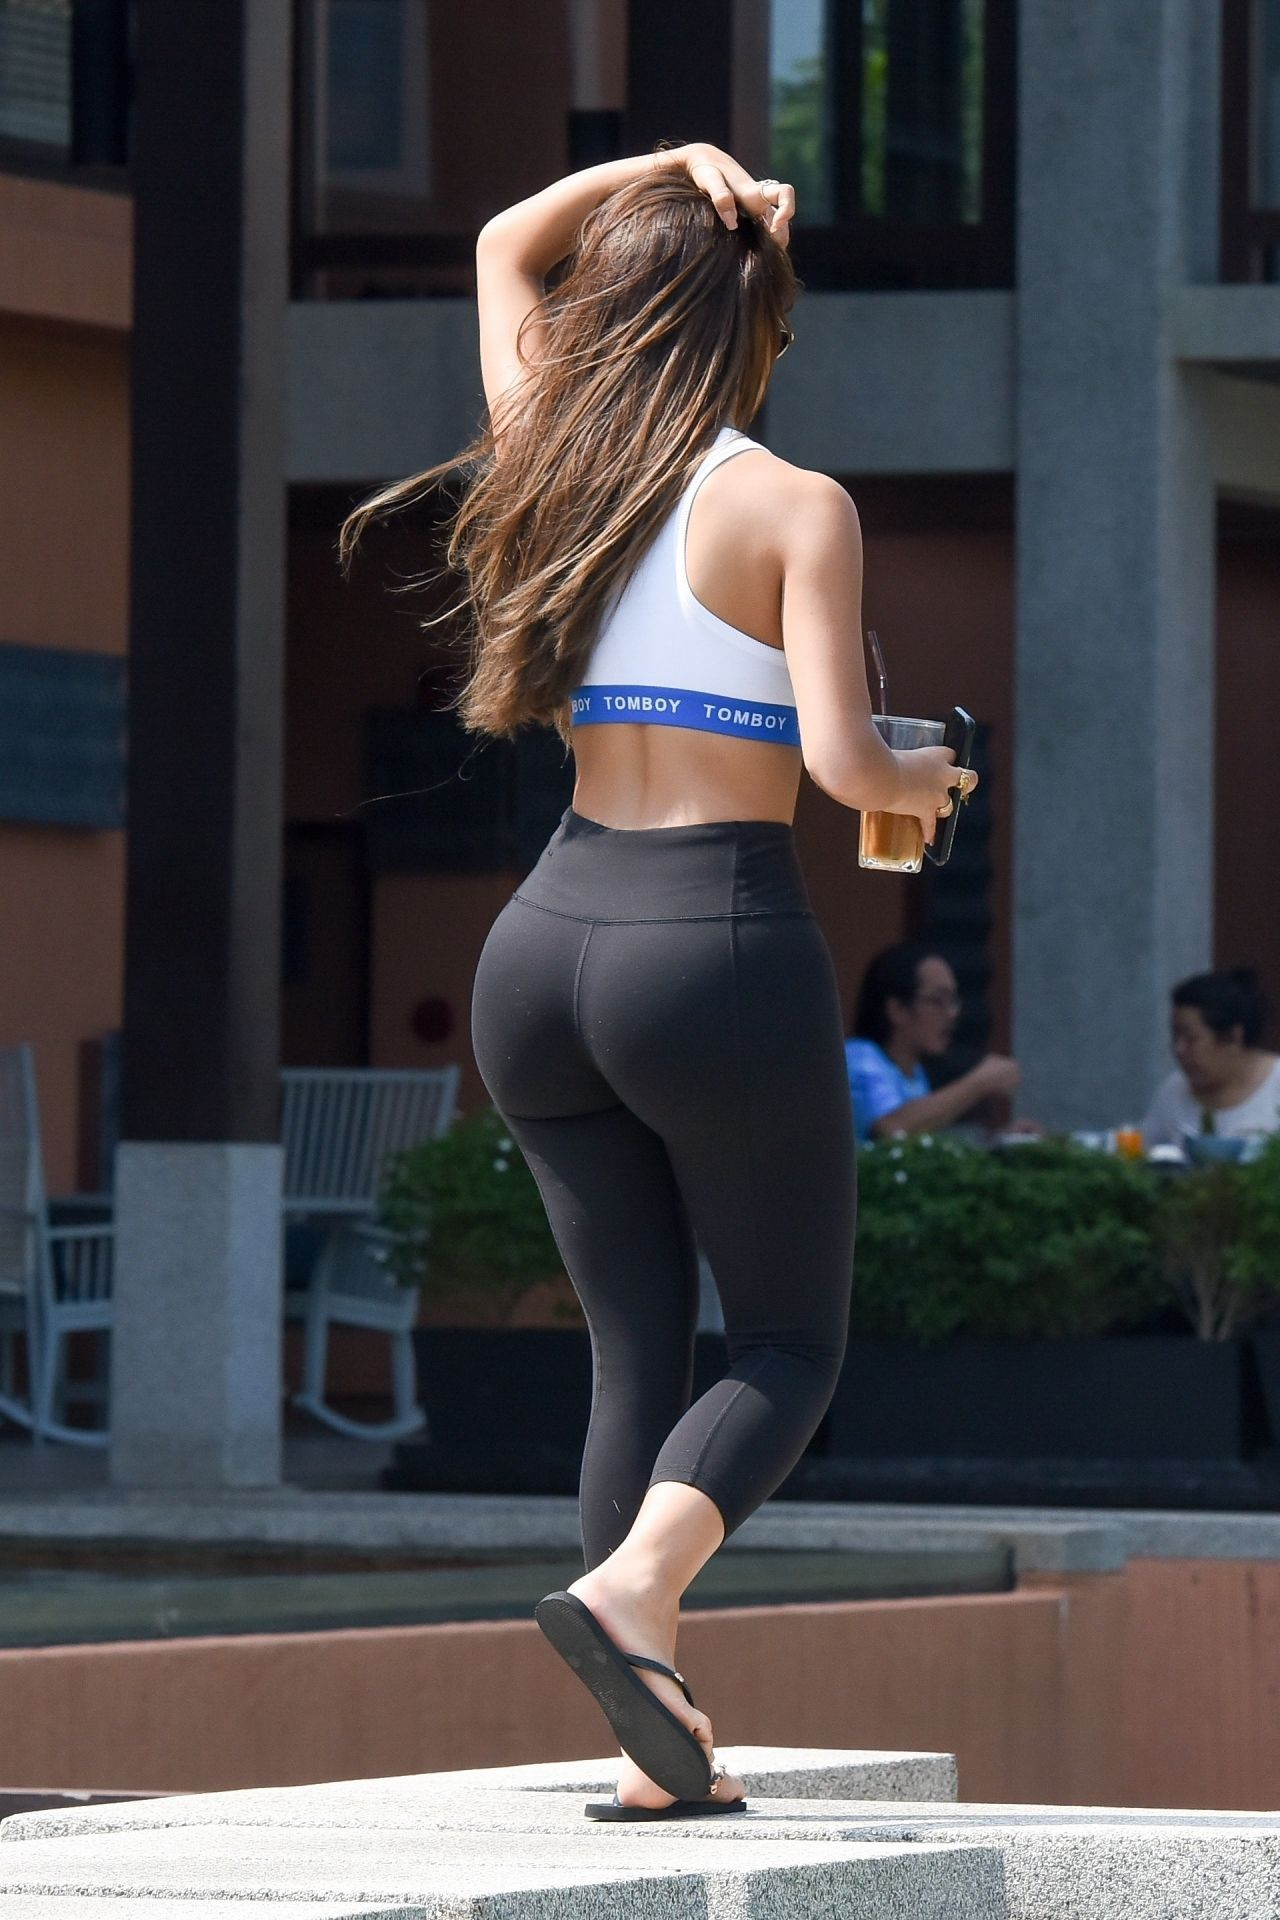 Demi Rose In A Tiny Quot Tomboy Quot Crop Top And Leggings 02 08 2019